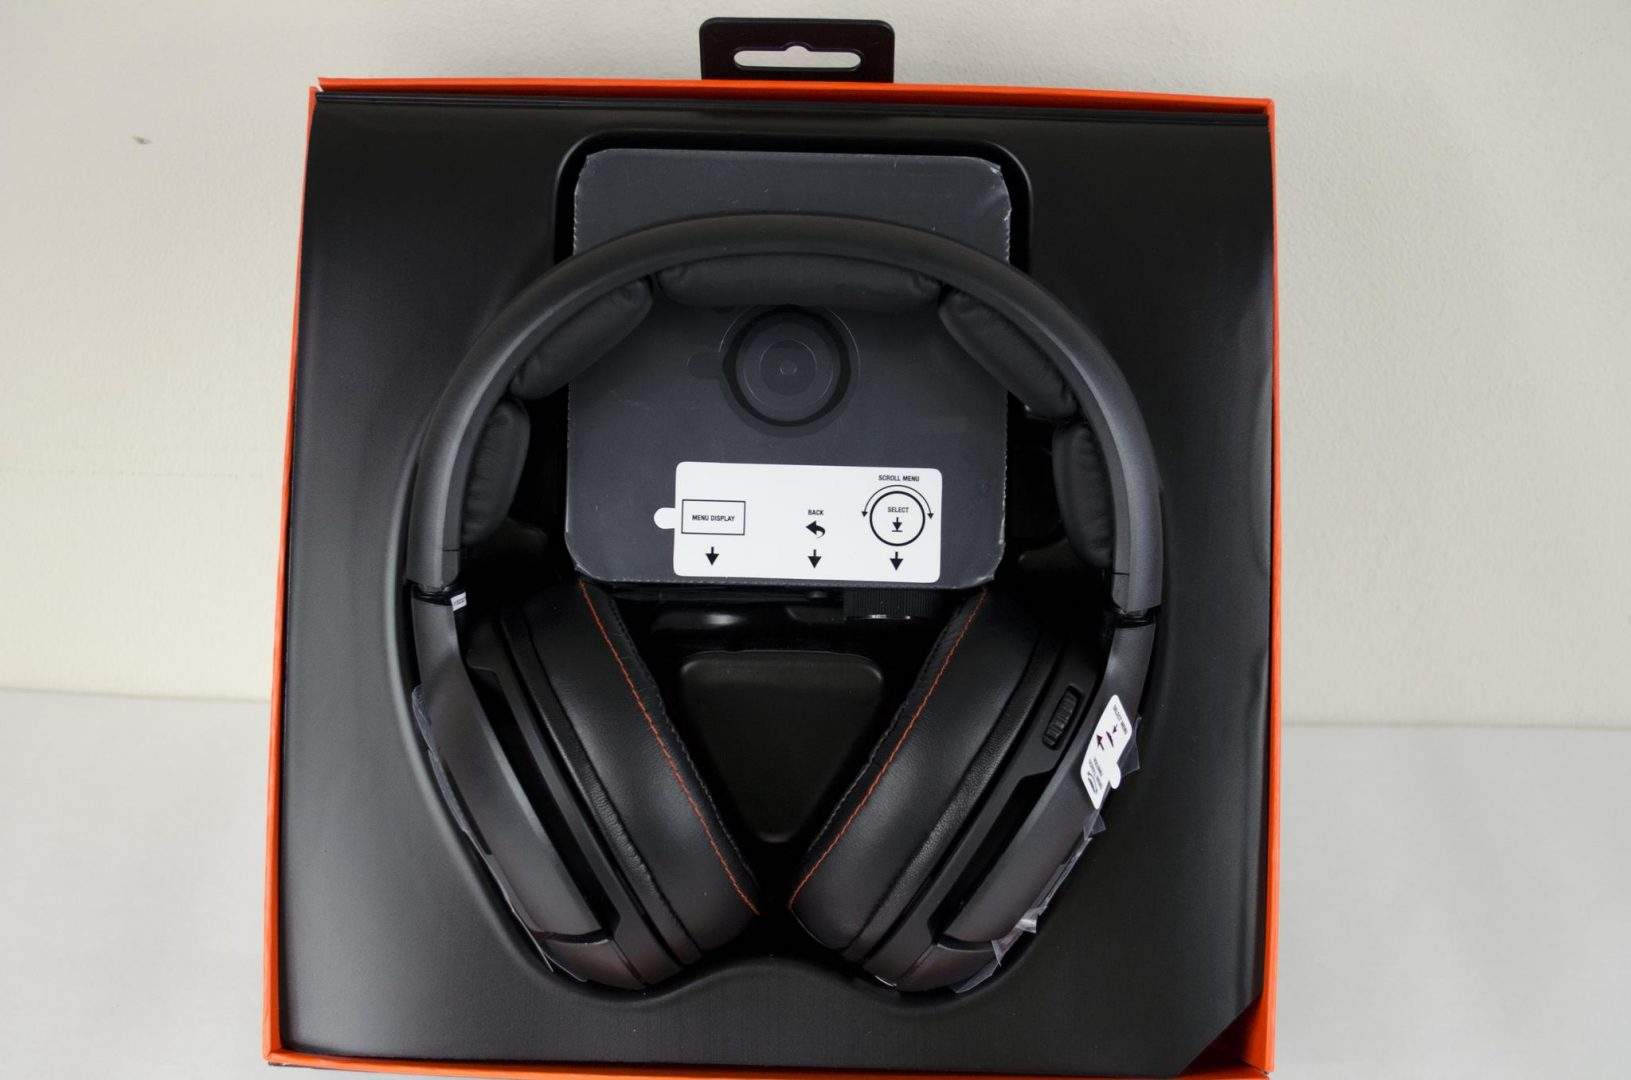 steelseries siber 800 wireless gaming headset review_2